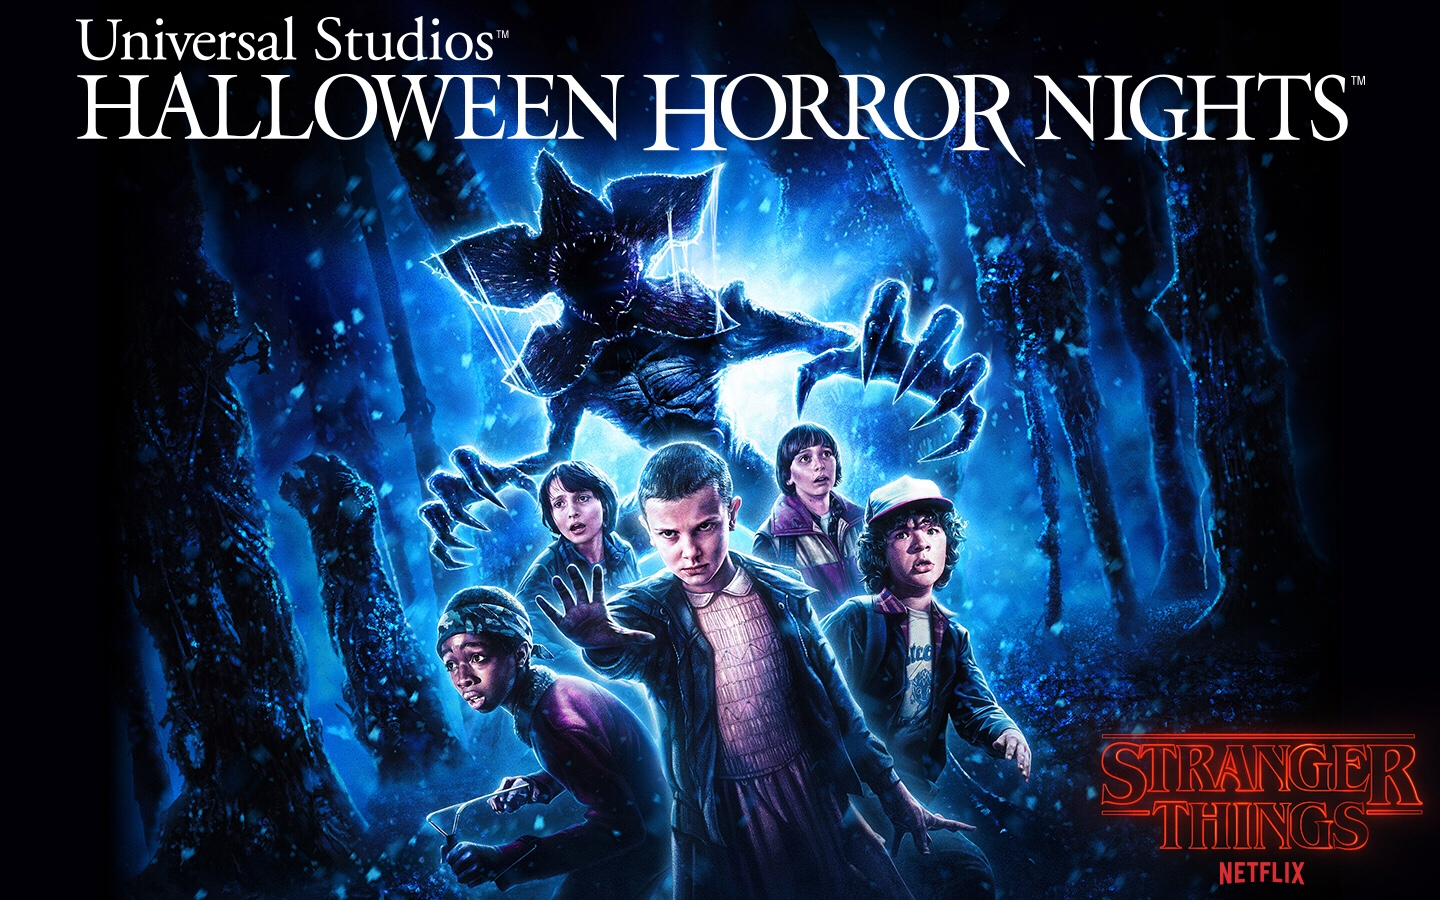 'Stranger Things' será atracción estelar en Halloween Horror Nights